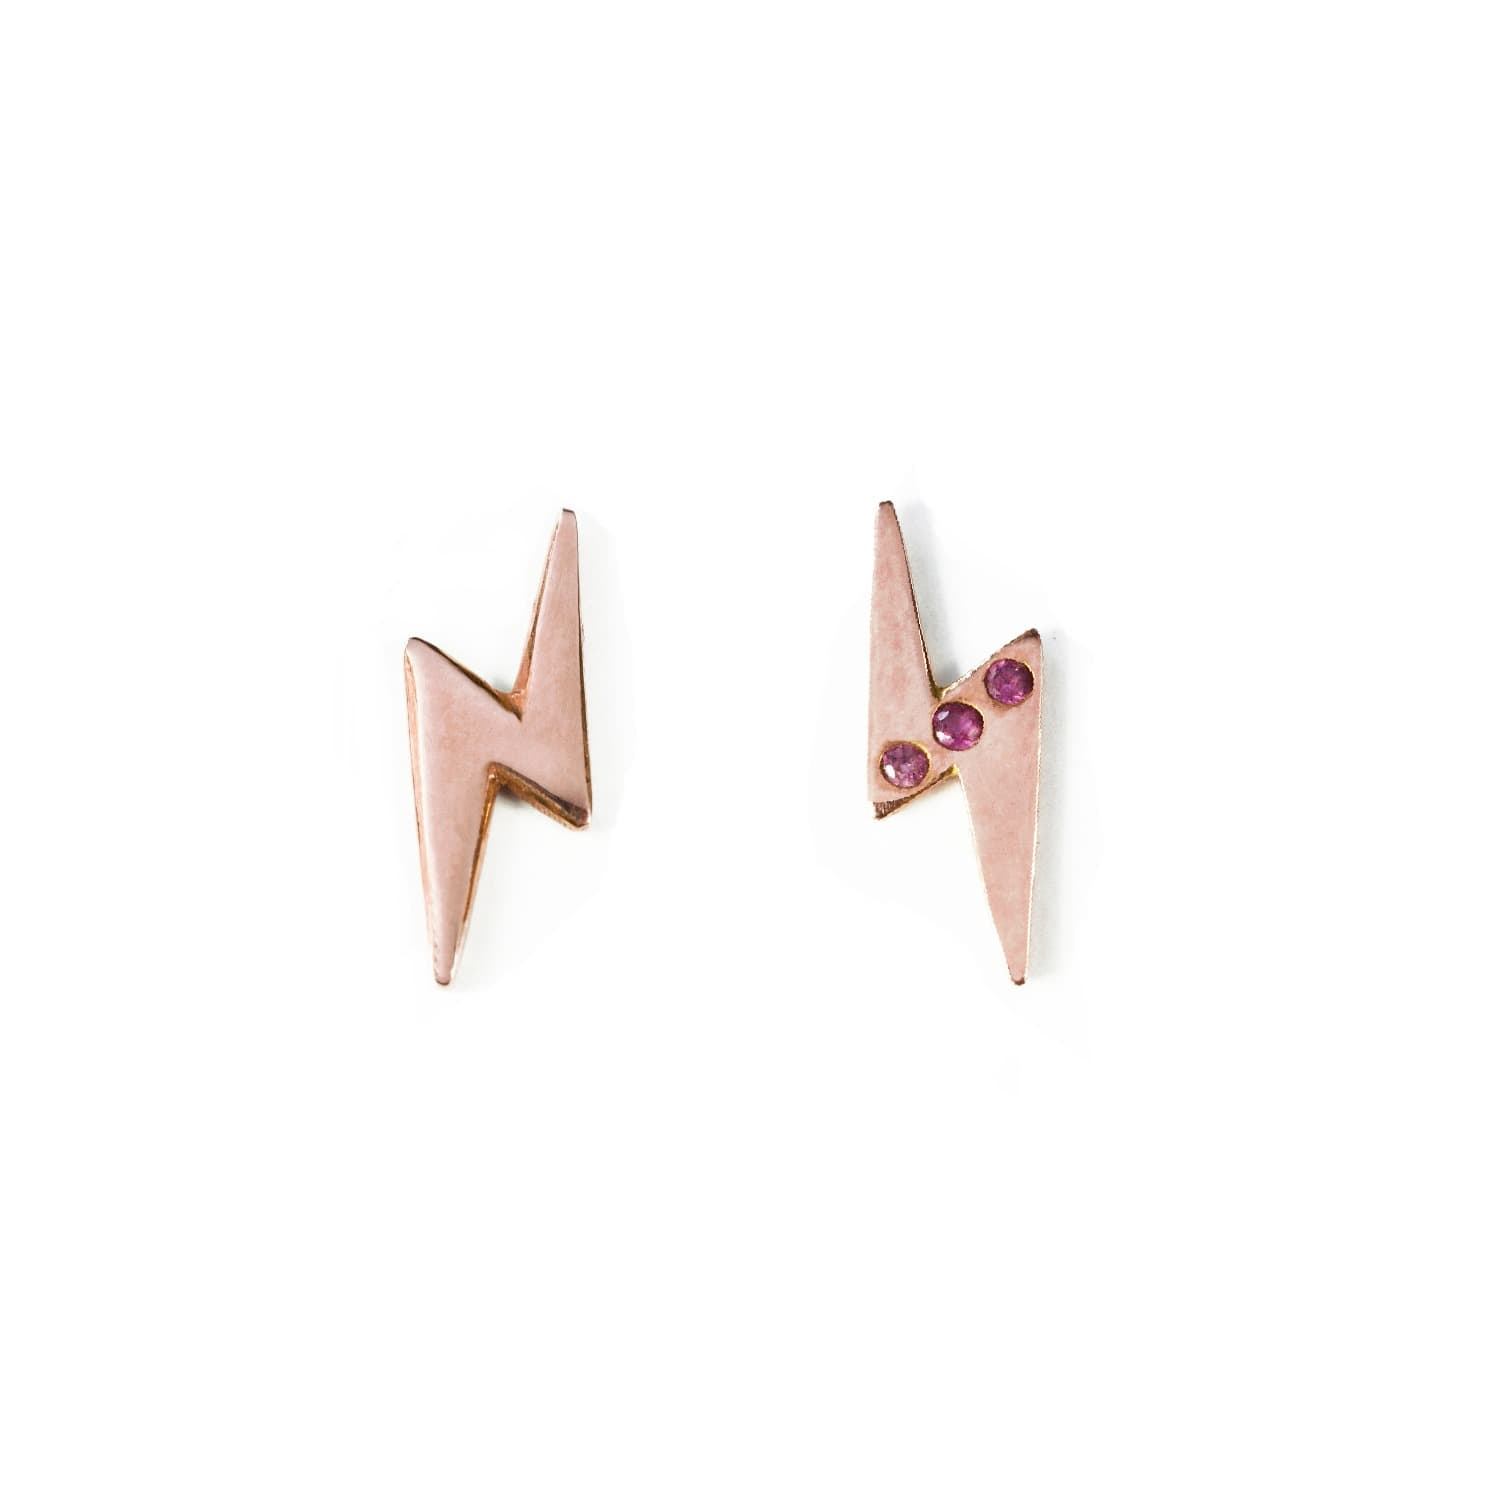 1f5baf8bf 9ct Rose Gold Lightning Stud Earrings | BARK | Wolf & Badger